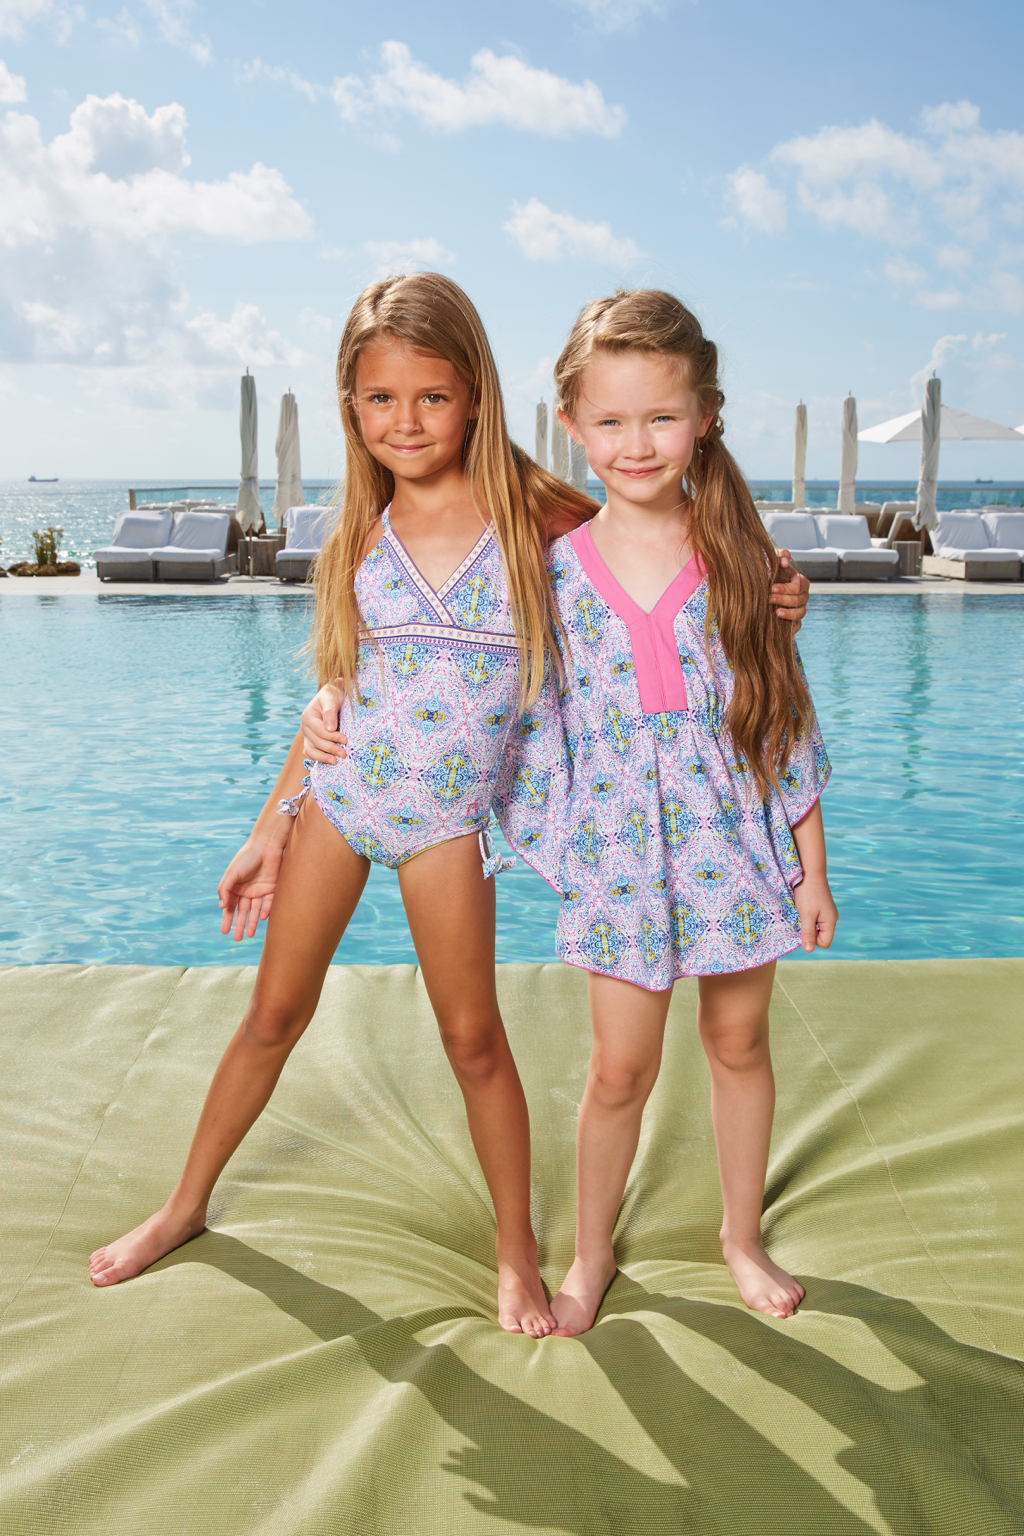 Little-Girls-Swimsuit-and-Cover-Up-Sets_Cabana-Life_Bora-Bora-Swimsuit-&-Cover-Up-Set-1.jpg